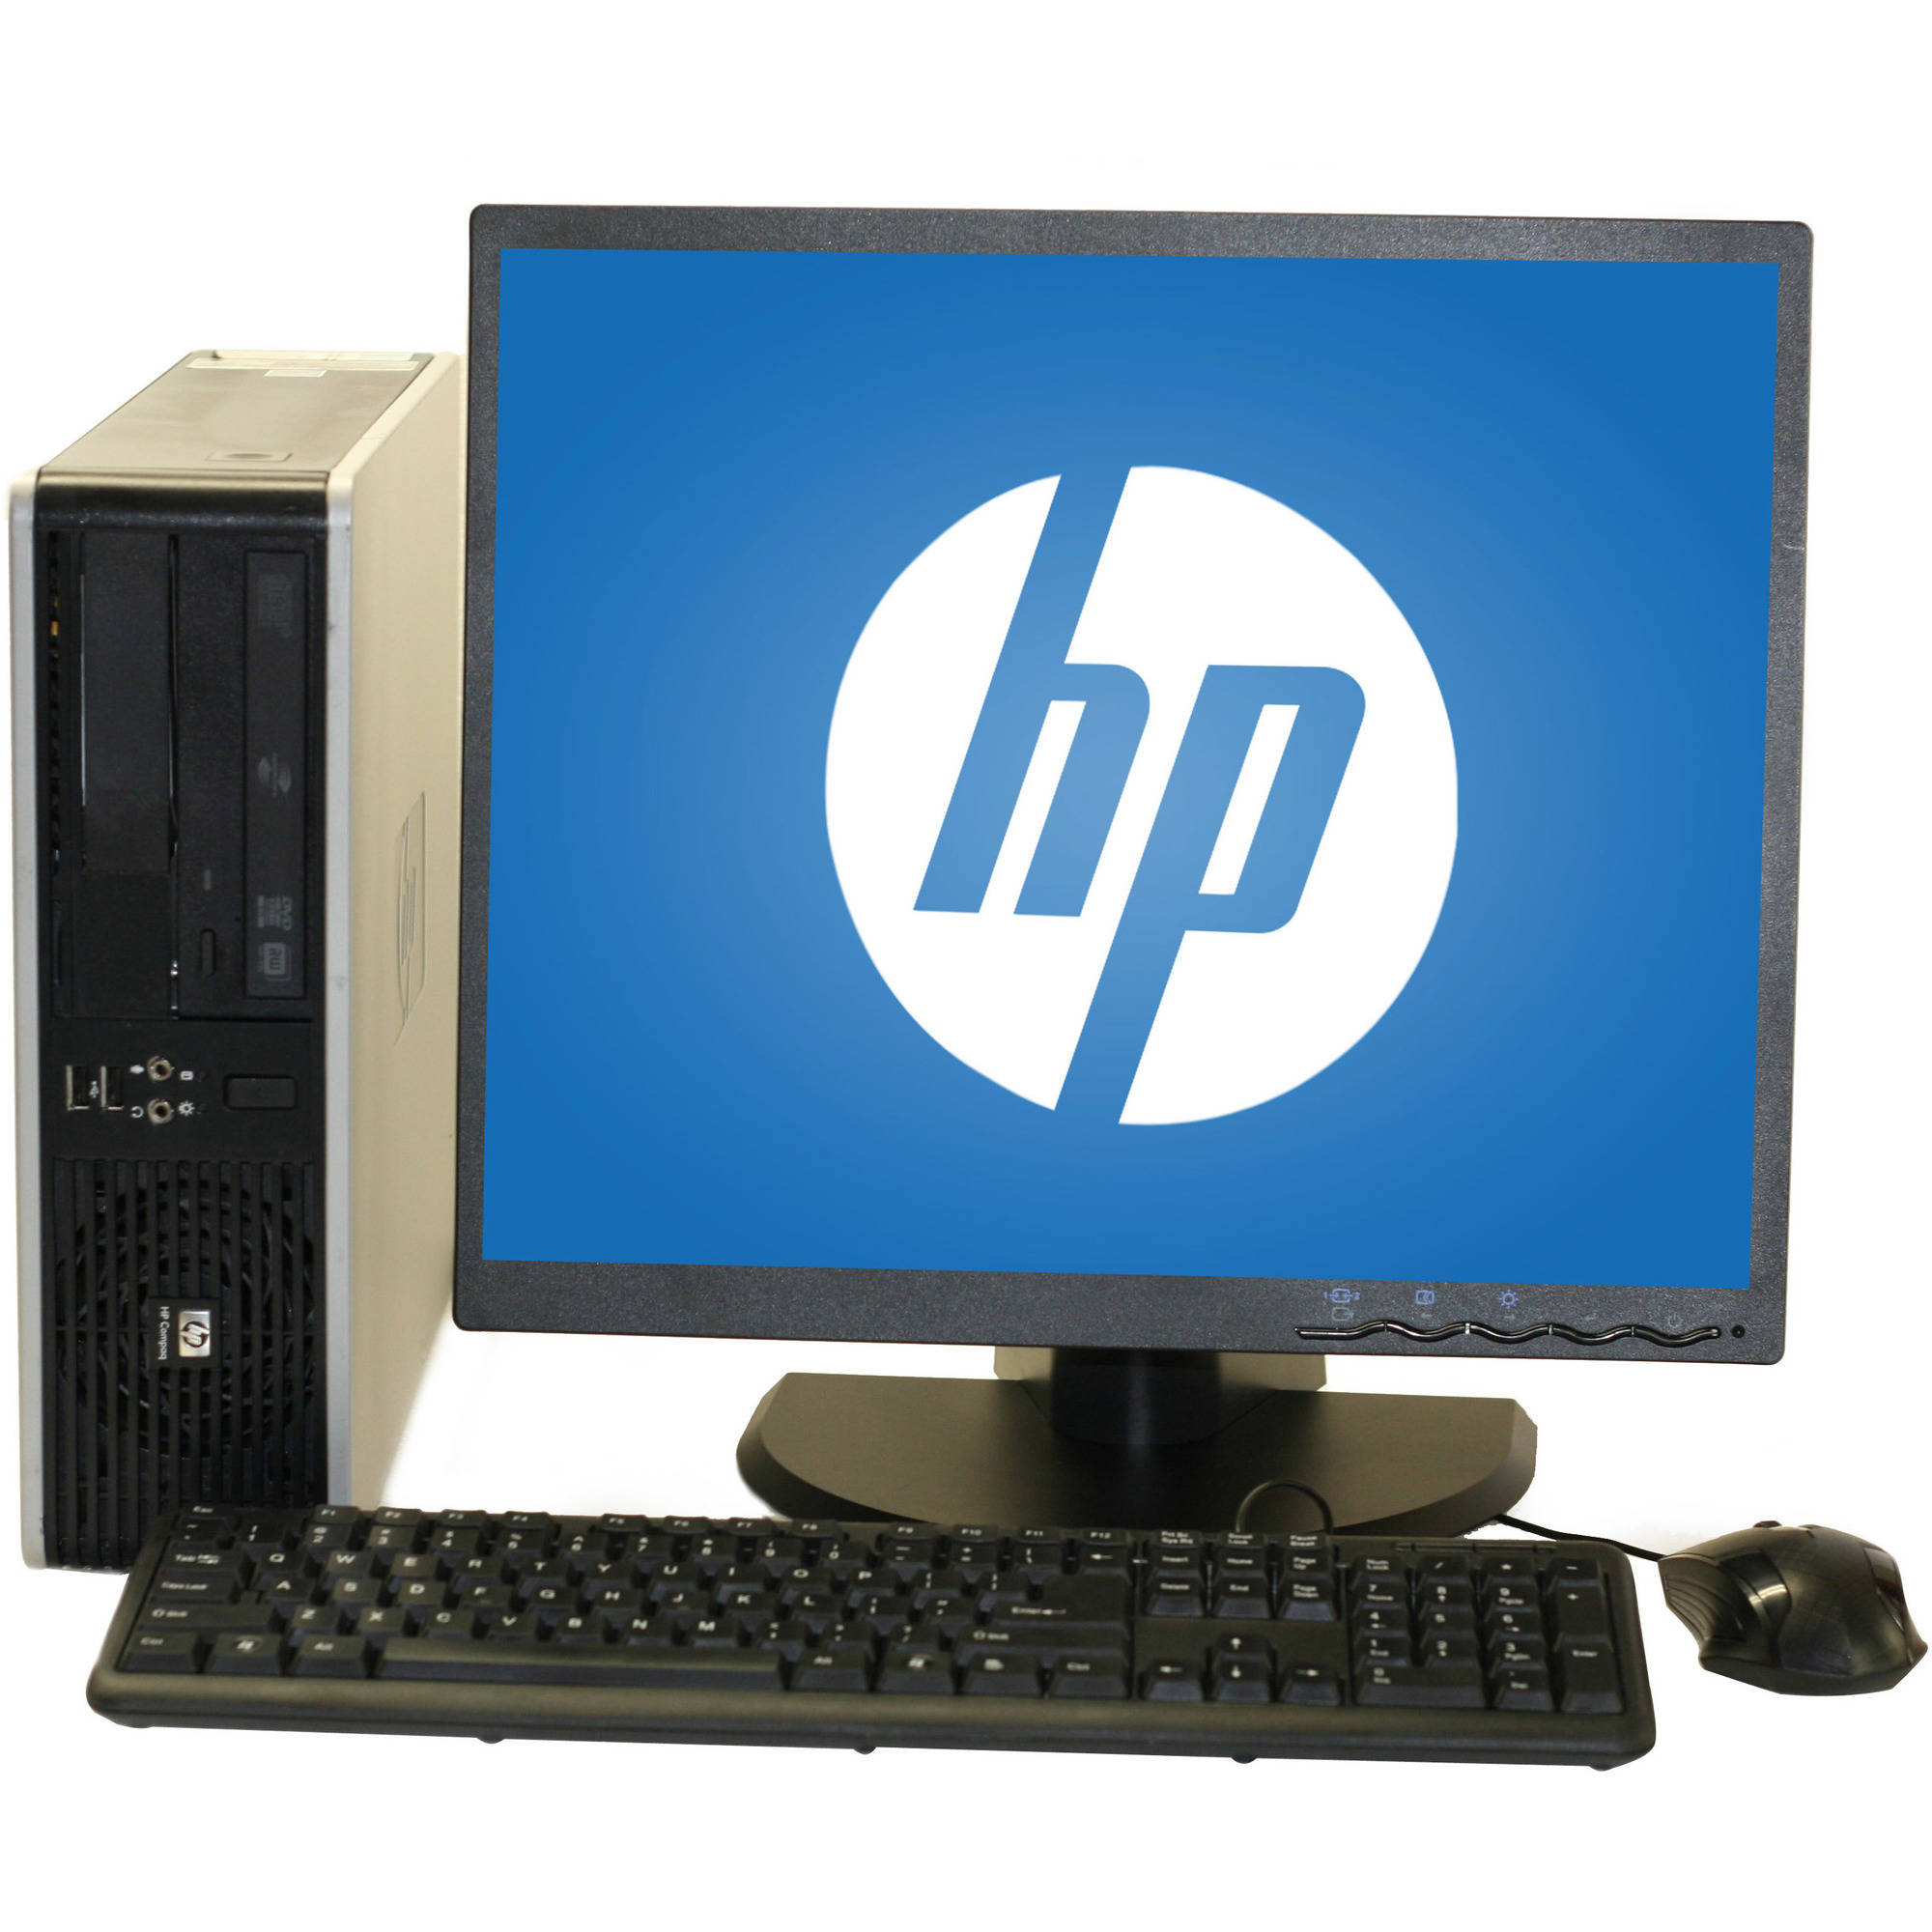 "Refurbished HP 7900 Desktop PC with Intel Core 2 Duo Processor, 8GB Memory, 19"" Monitor, 2TB Hard Drive and Windows 10 Home"